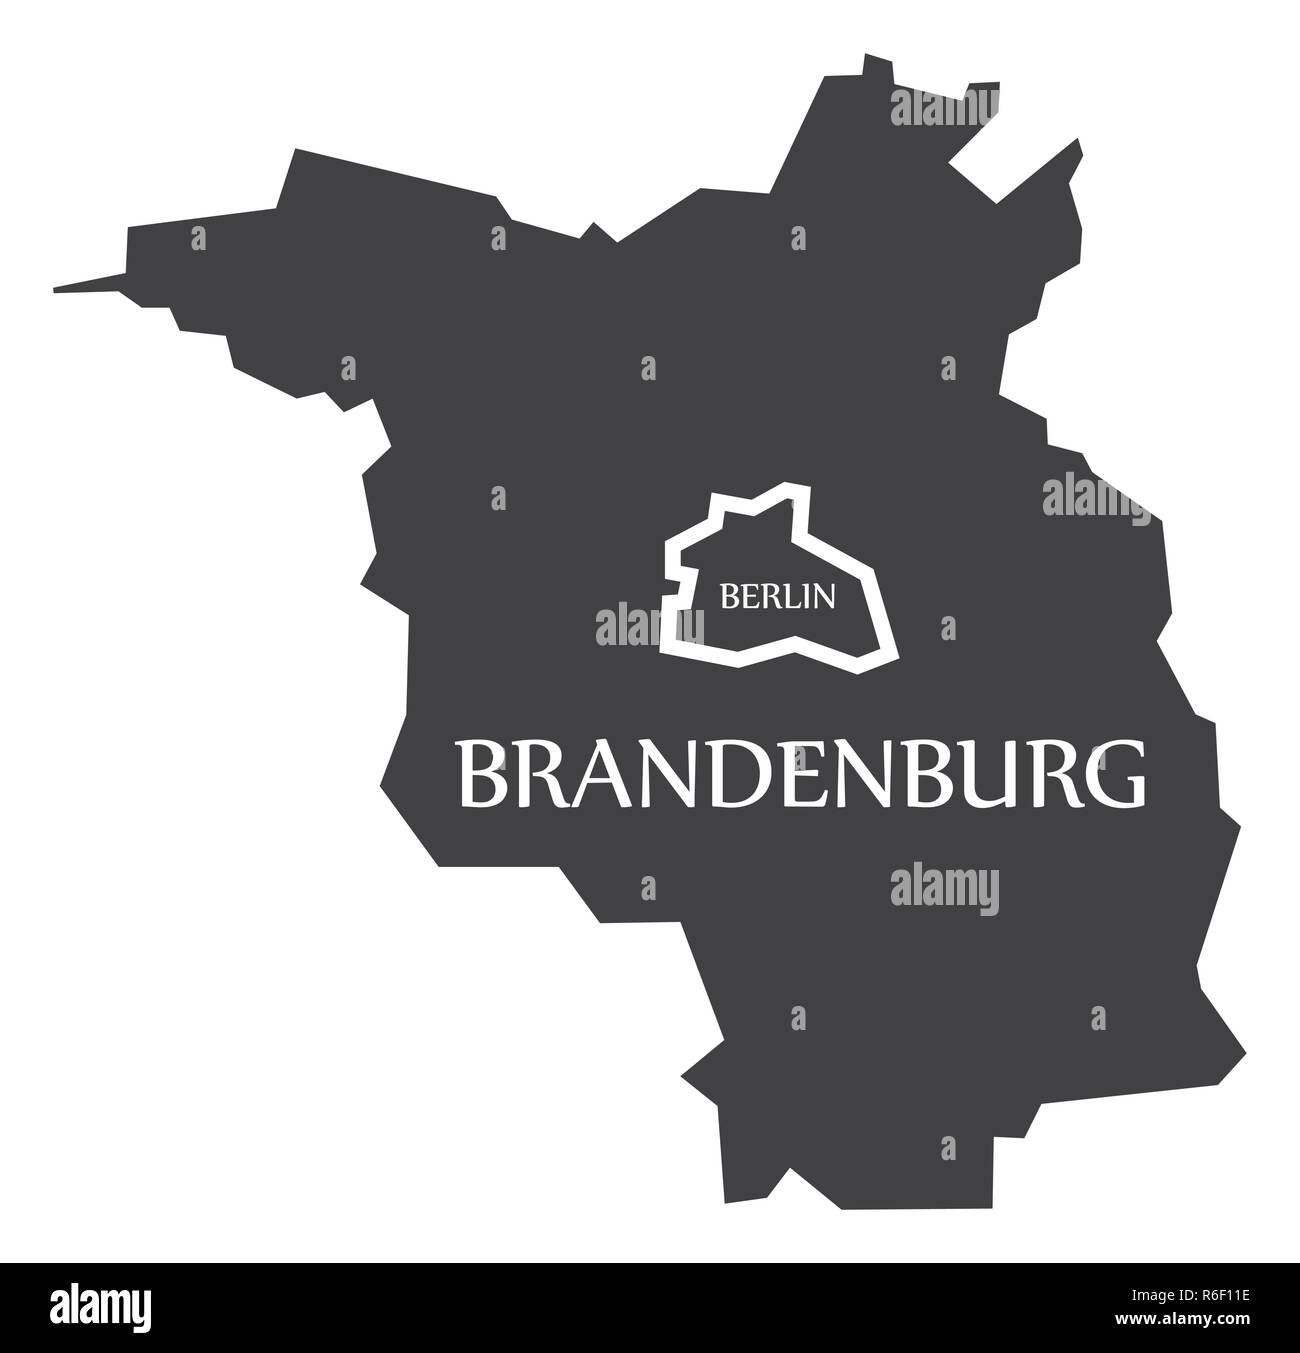 Berlin - Brandenburg federal states map of Germany black with titles - Stock Image